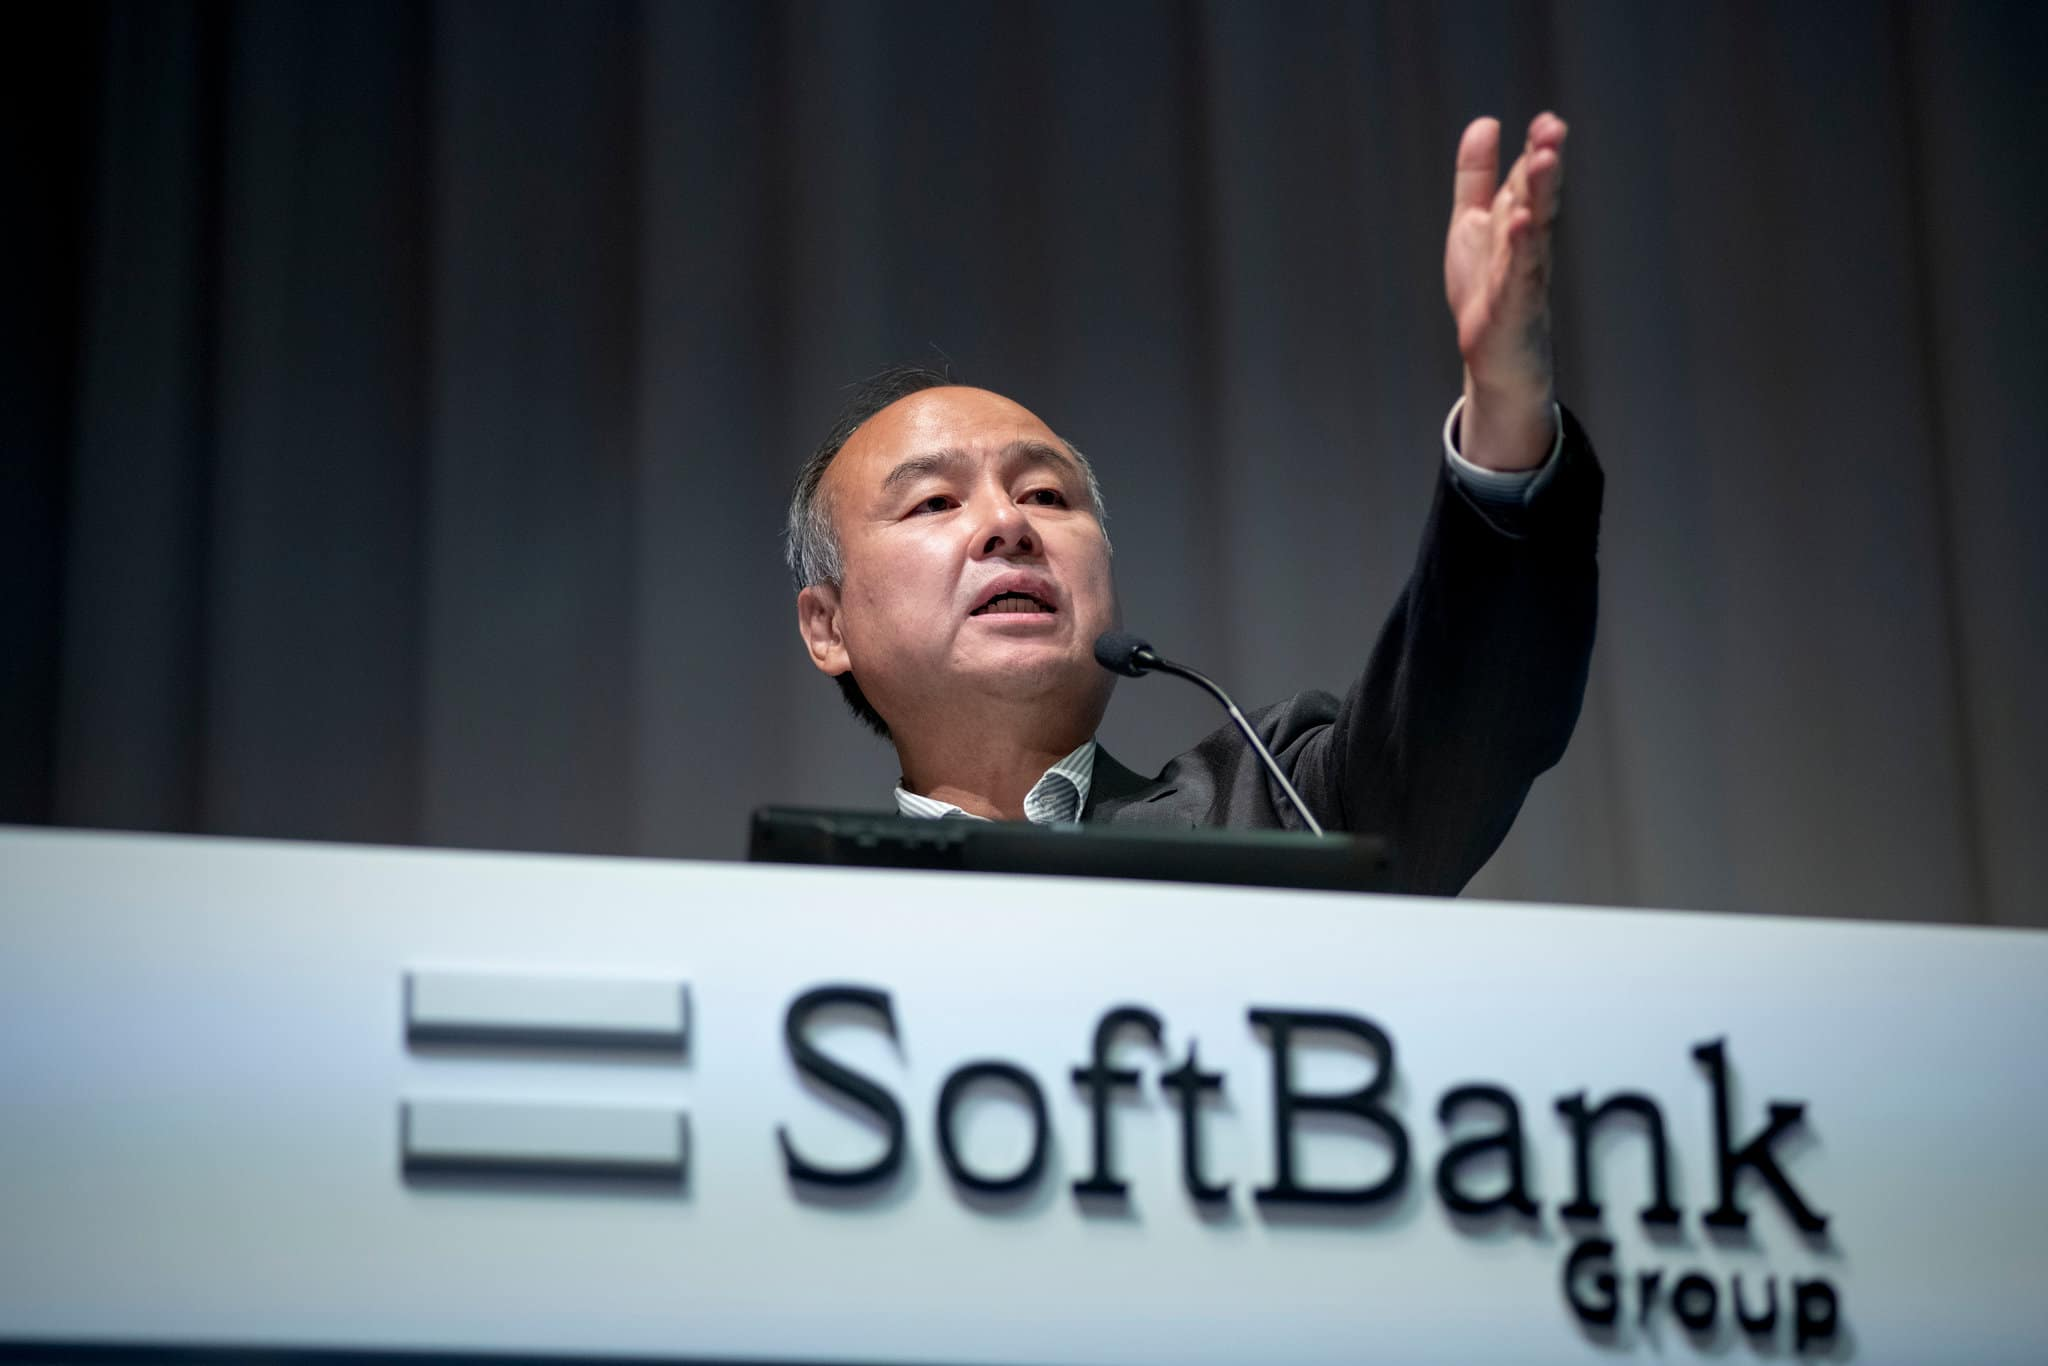 Softbank losses of billions, yet this Indian CEO got double salary, know full details